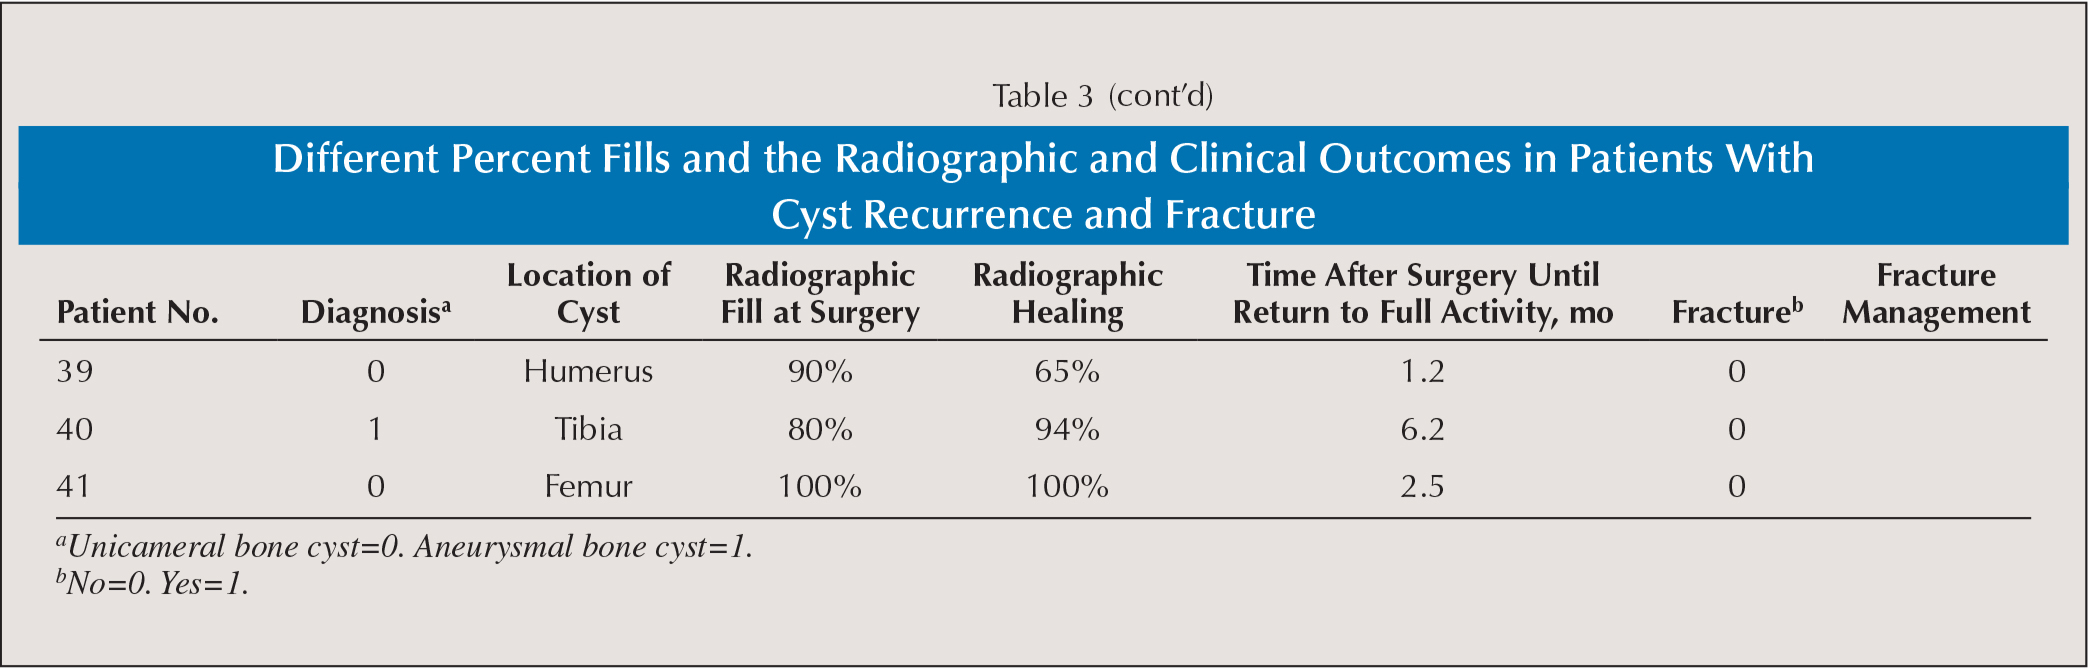 Different Percent Fills and the Radiographic and Clinical Outcomes in Patients With Cyst Recurrence and Fracture